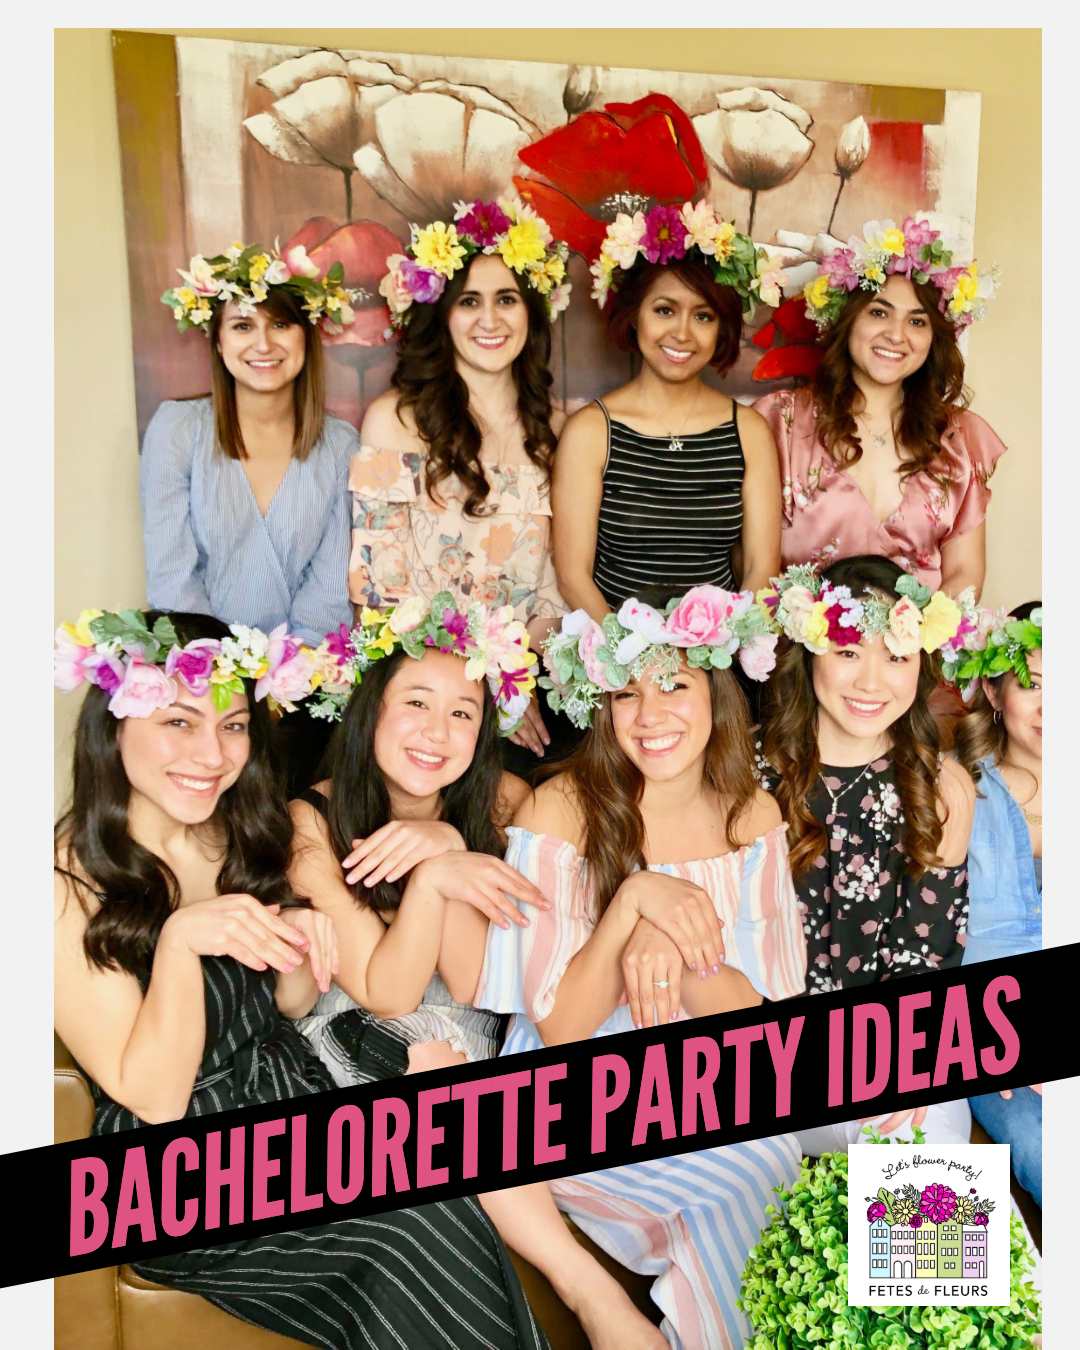 bachelorette party ideas - flower crown making workshop